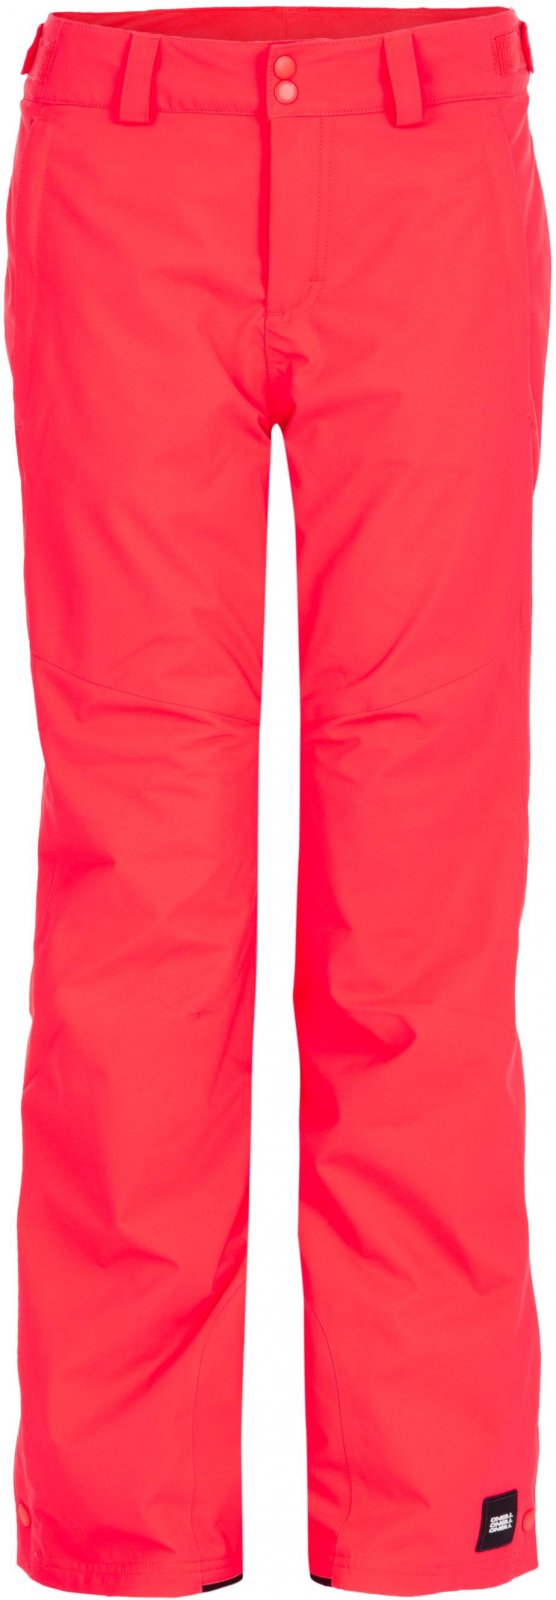 O'Neill Star Insulated Pants